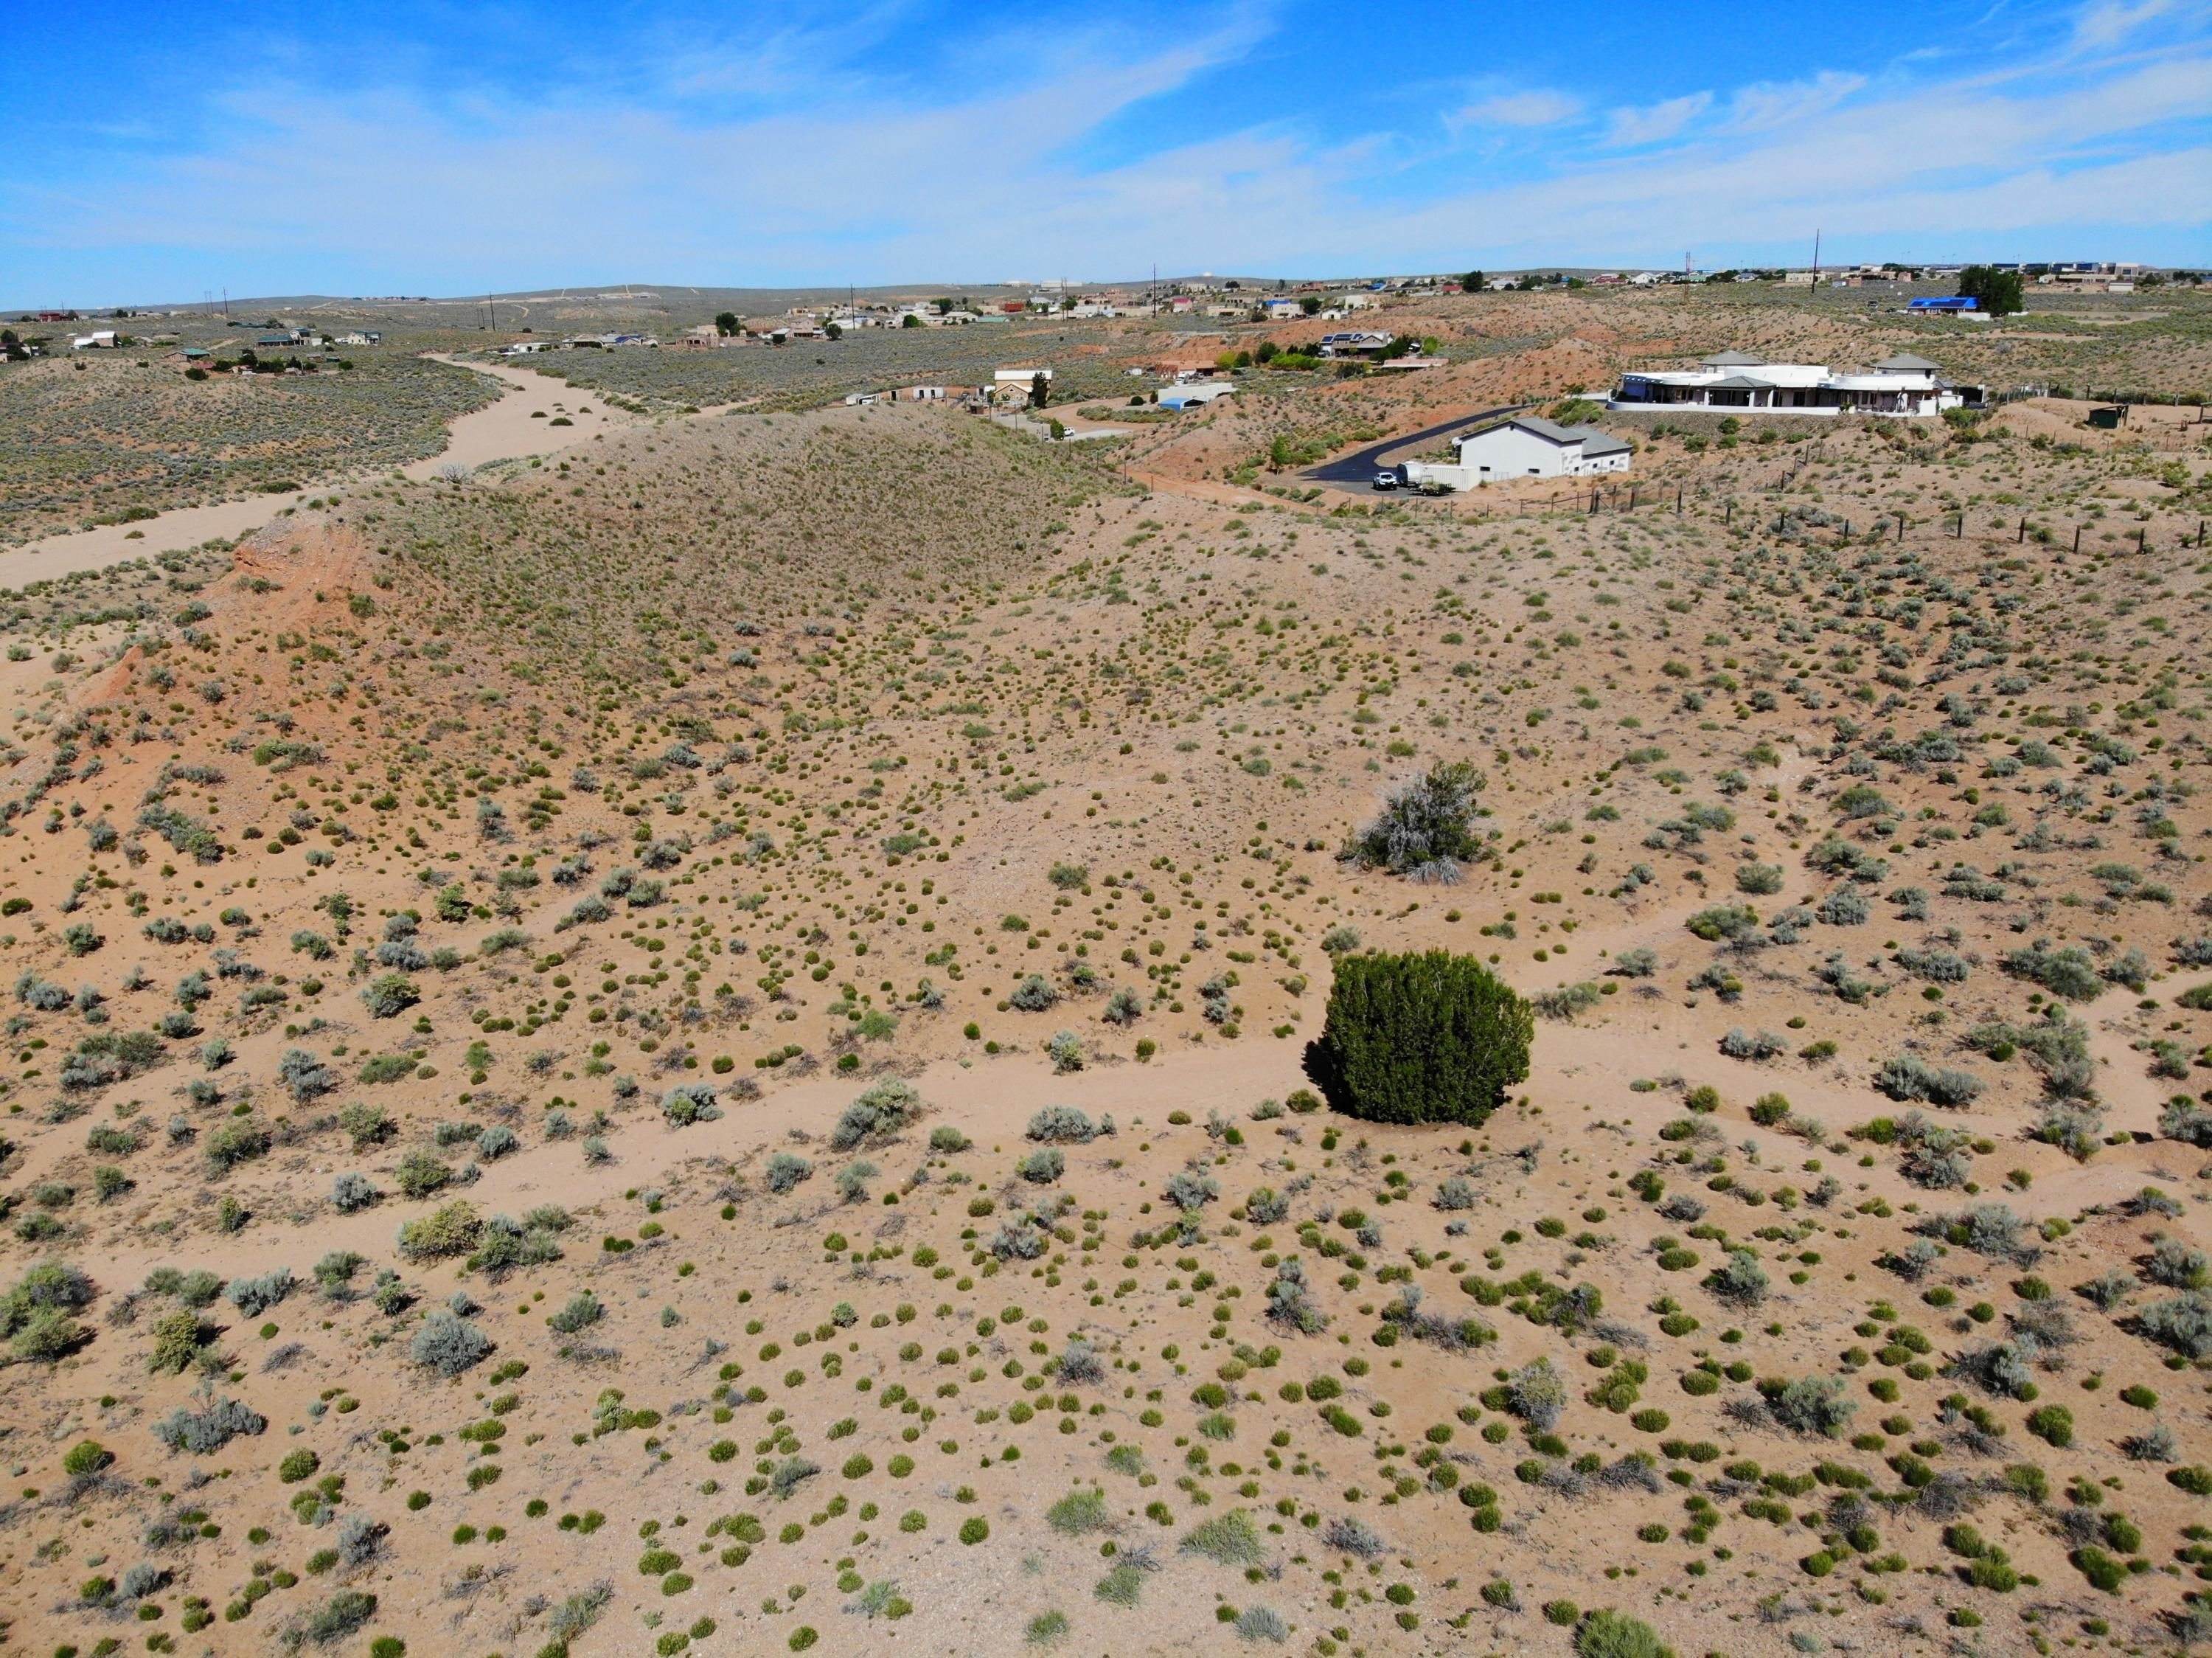 5550 Lilac Place NE, Rio Rancho, NM 87144 - Rio Rancho, NM real estate listing